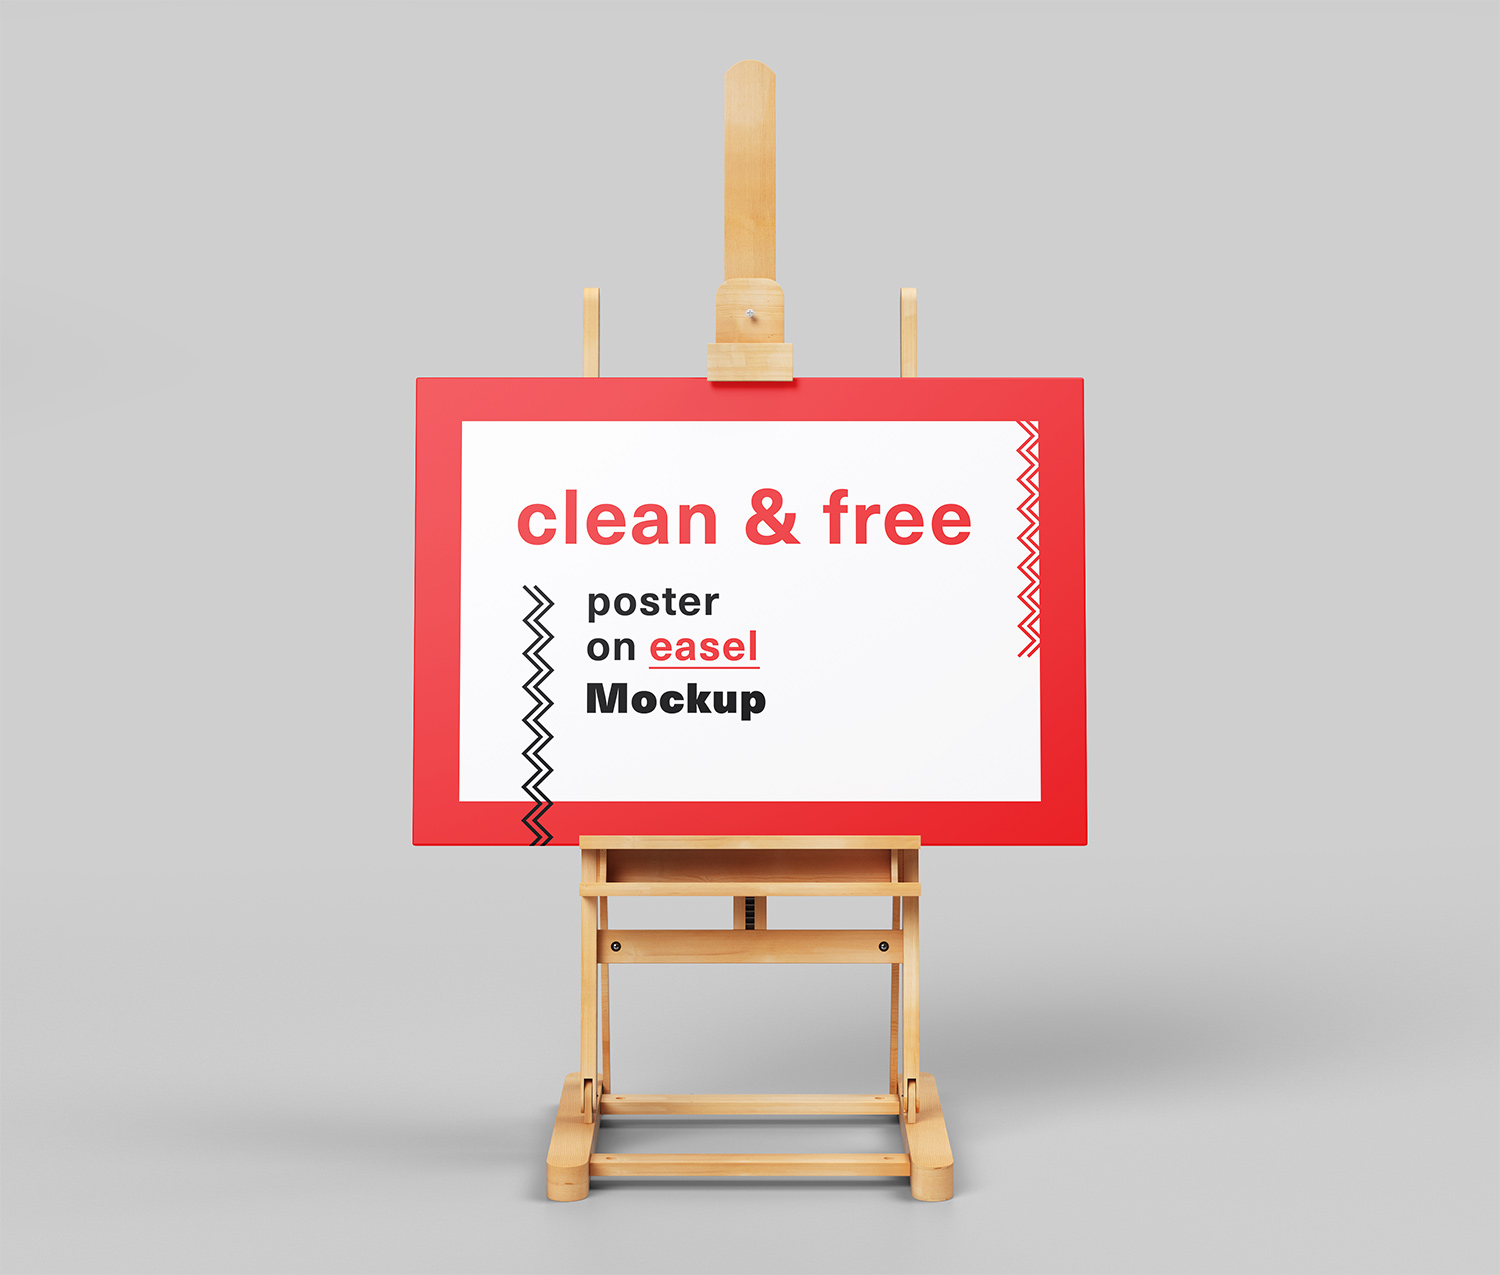 Canvas-Poster-on-Easel-Mockup-Free-04